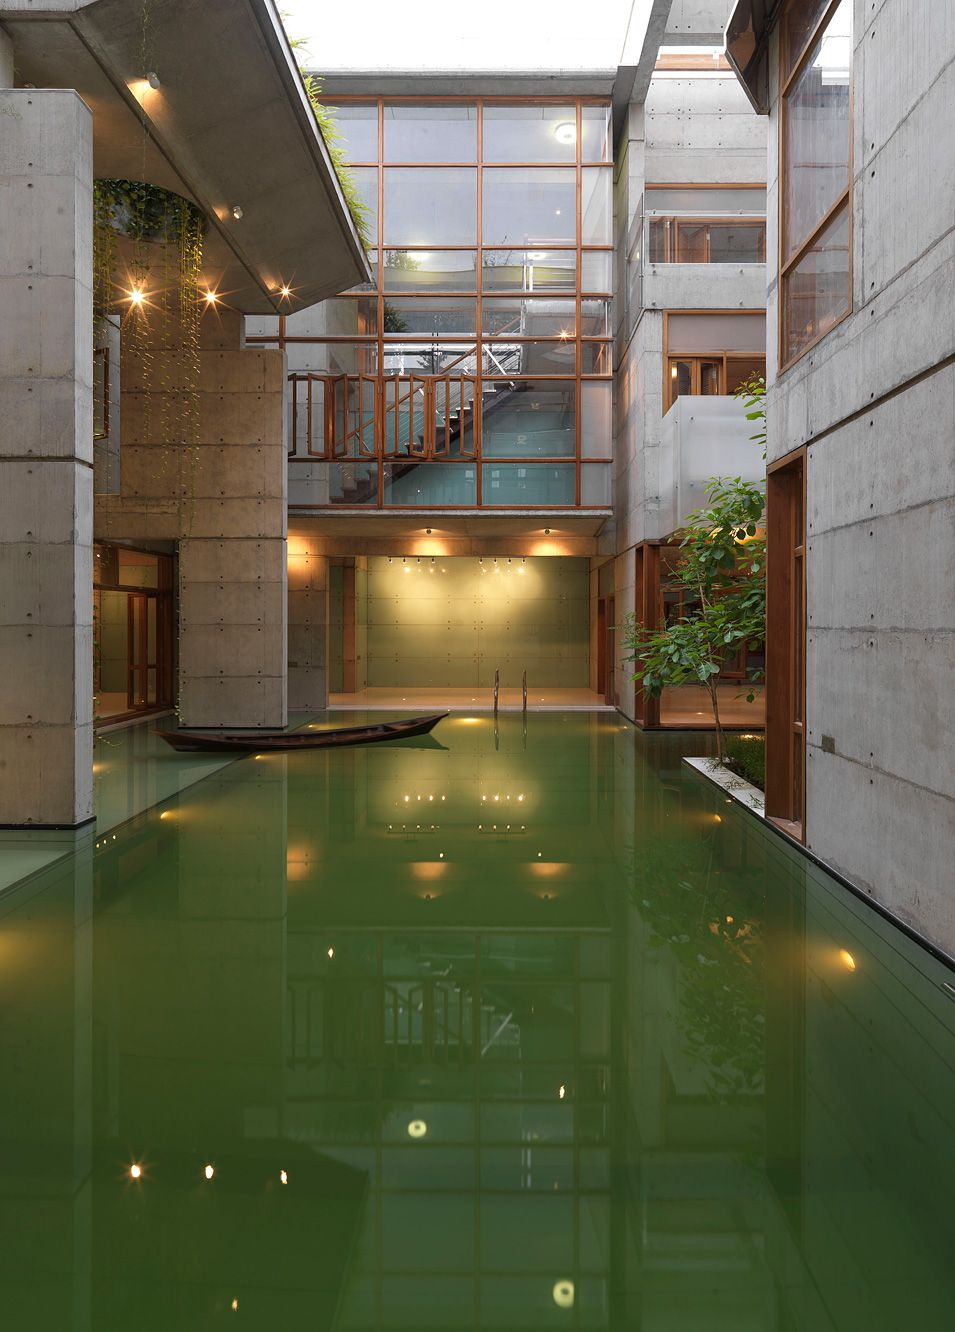 S.A Residence – Unfolding Nothingness by SHATOTTO